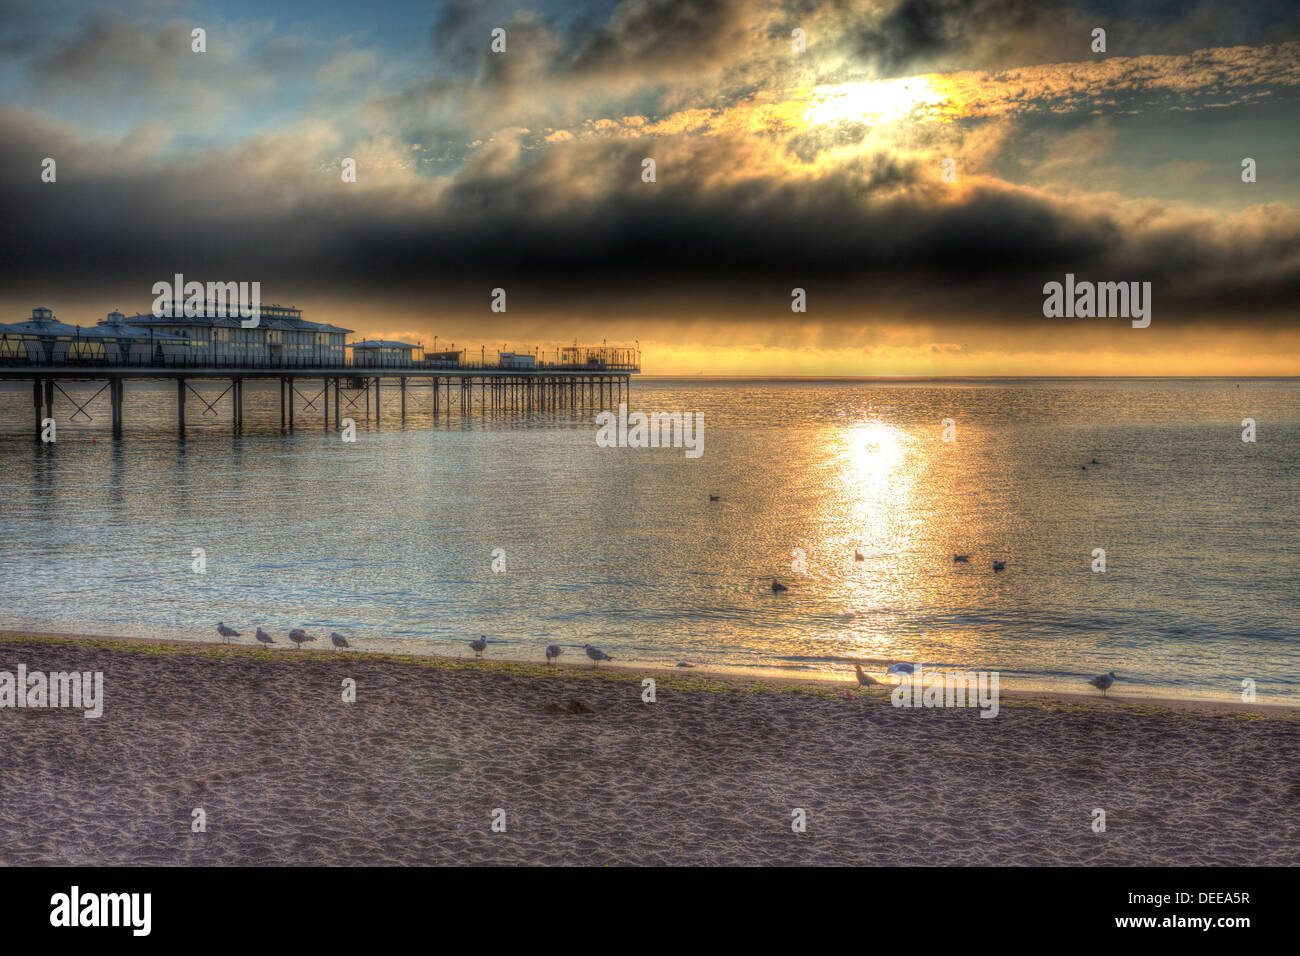 Pier with dramatic dark sky and moody clouds and sunlight in HDR - Stock Image